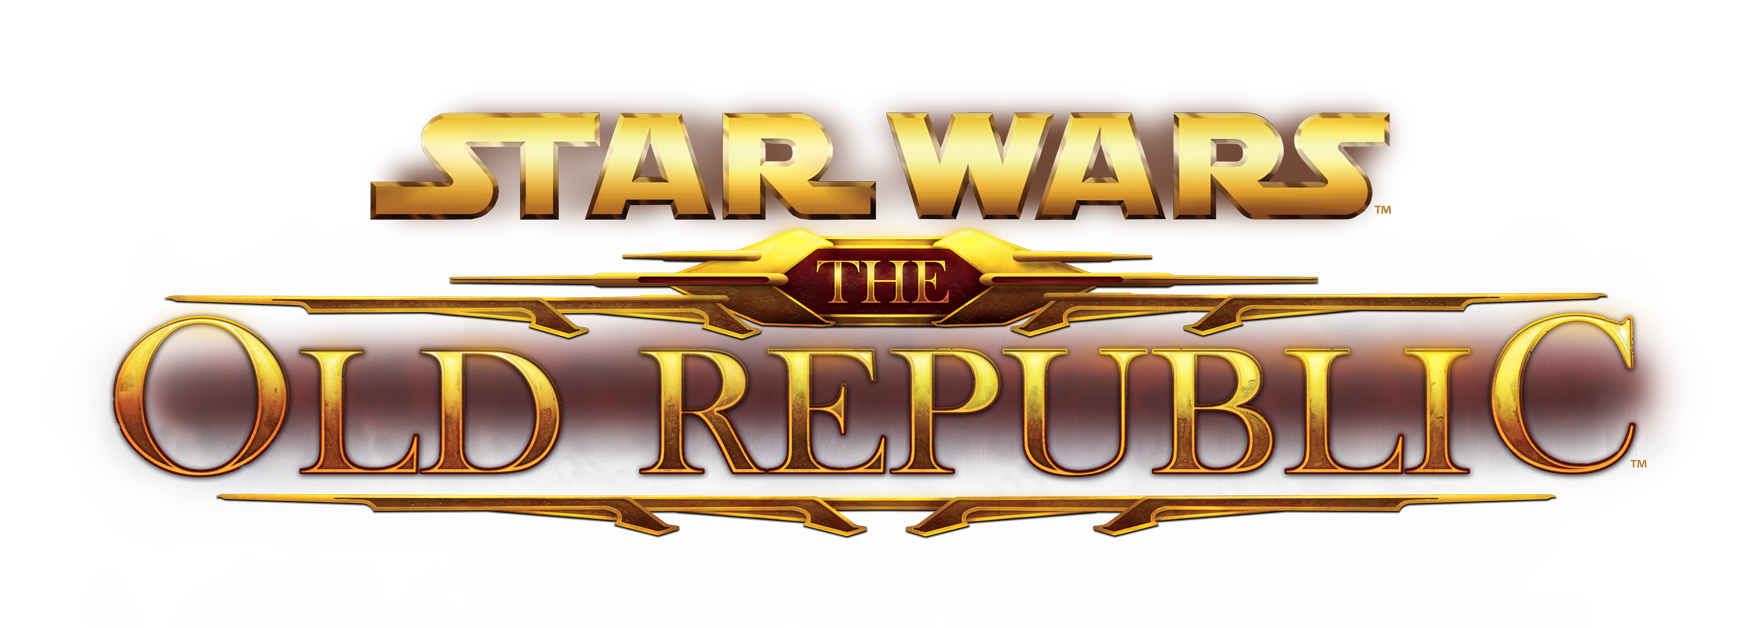 Image 20111221142905 star wars the old republic pirates online wiki fandom - Republic star wars logo ...